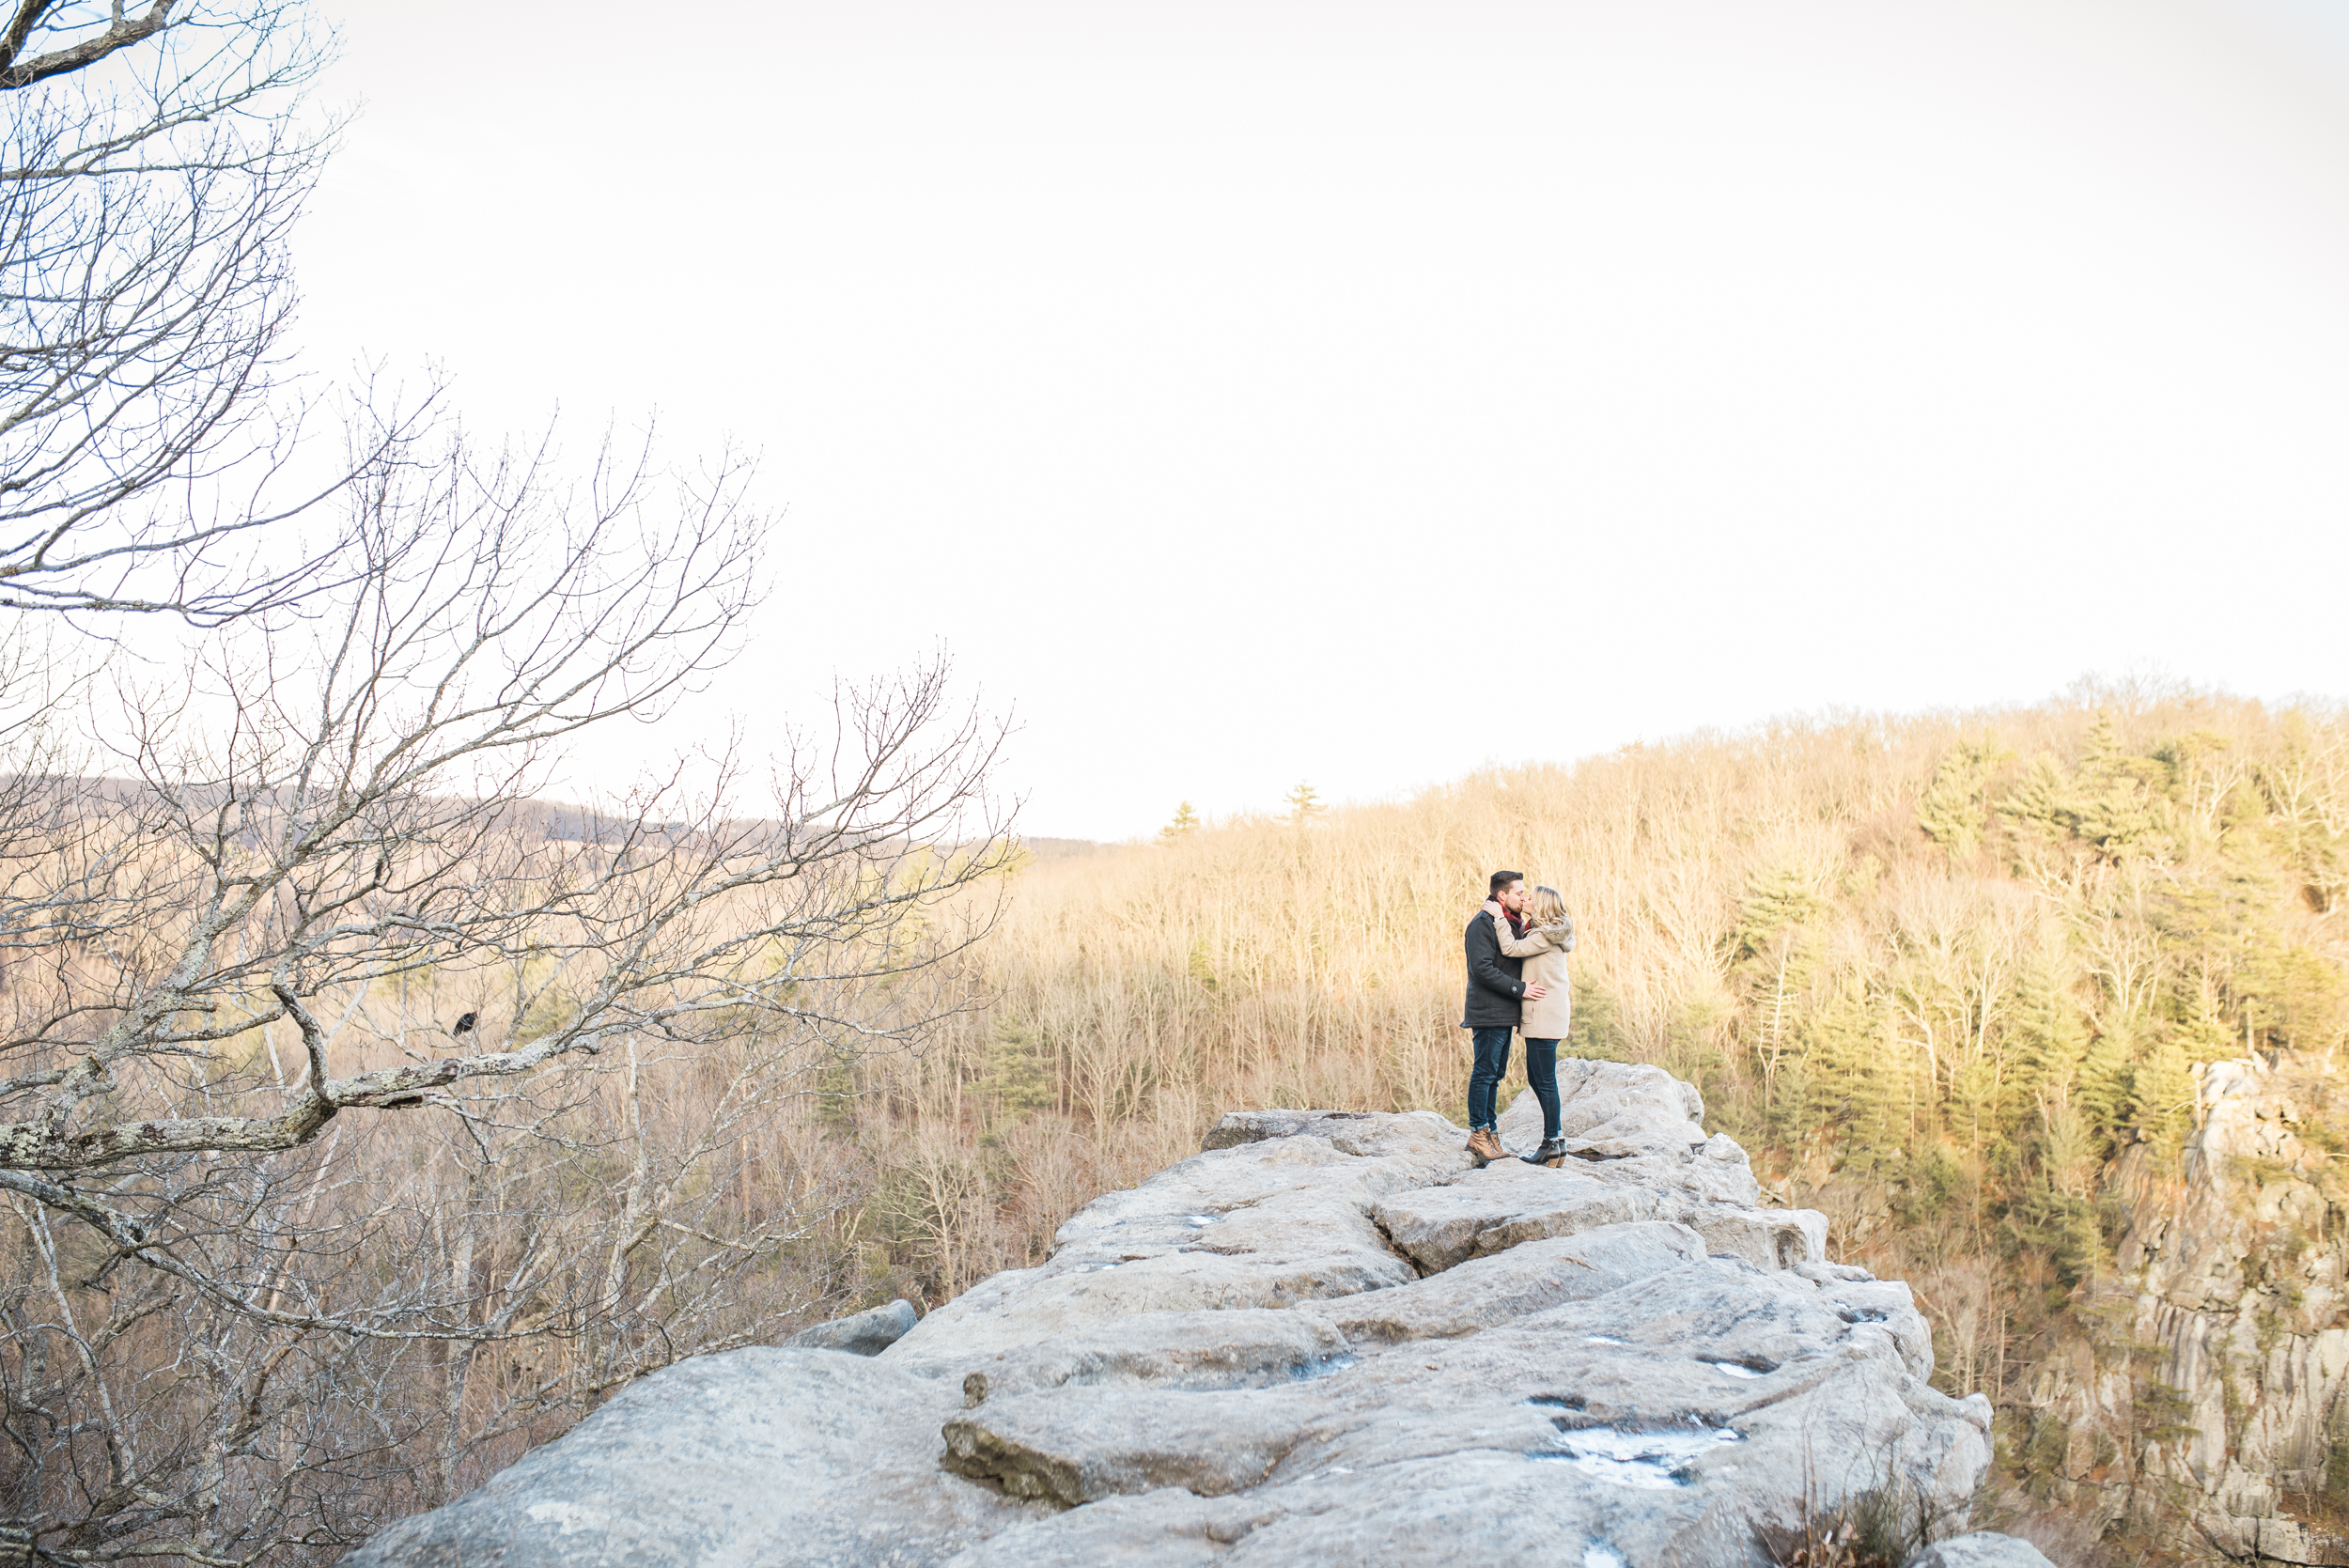 rocks-state-park-engagement-chelsea-blanch-photography-1.jpgrocks-state-park-engagement-chelsea-blanch-photography-9